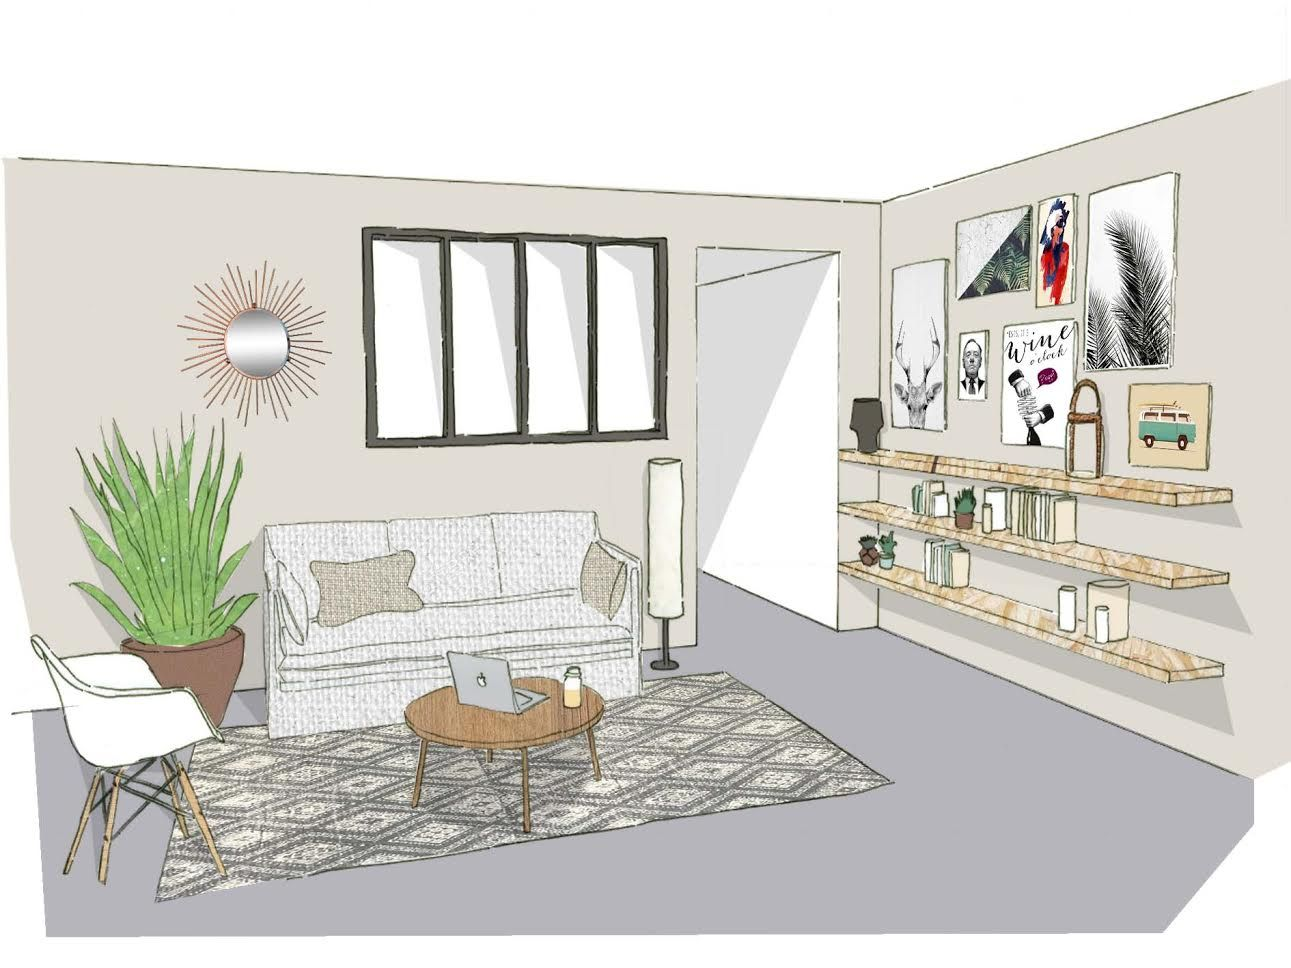 Projet salon naturel architecte projet sketch dessin for Salon amenagement interieur